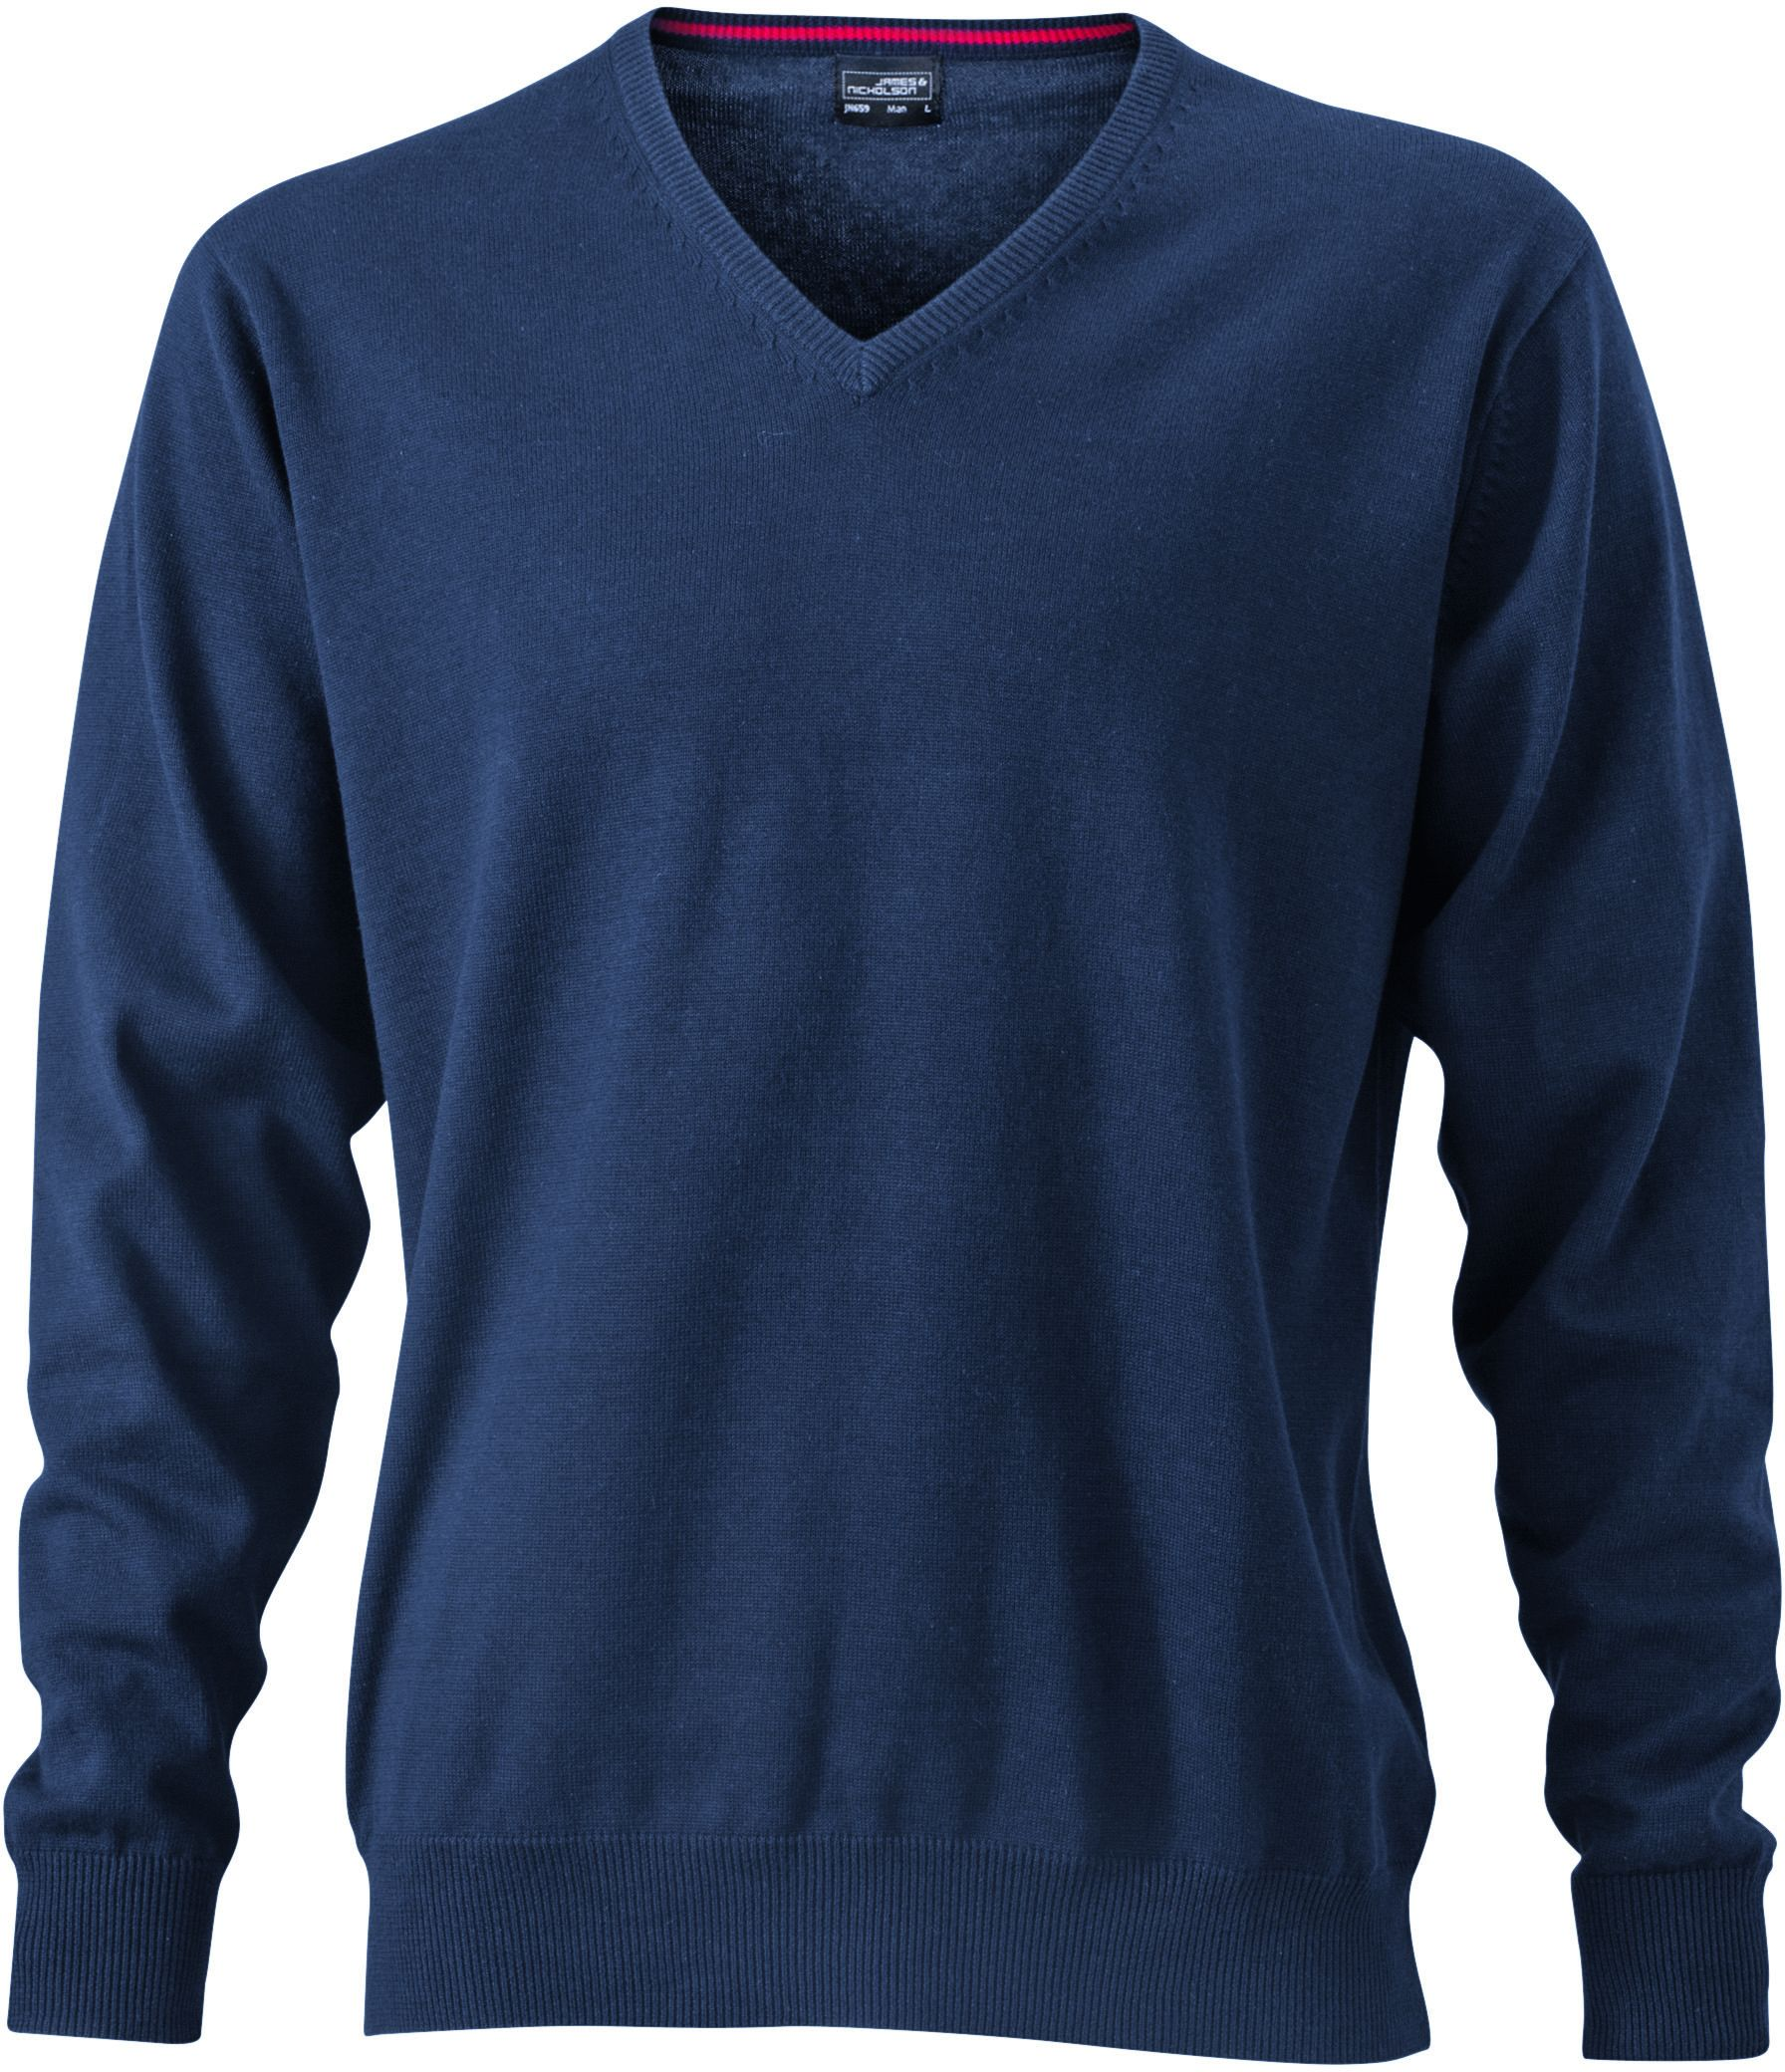 Men's V-Neck Pullover - navy